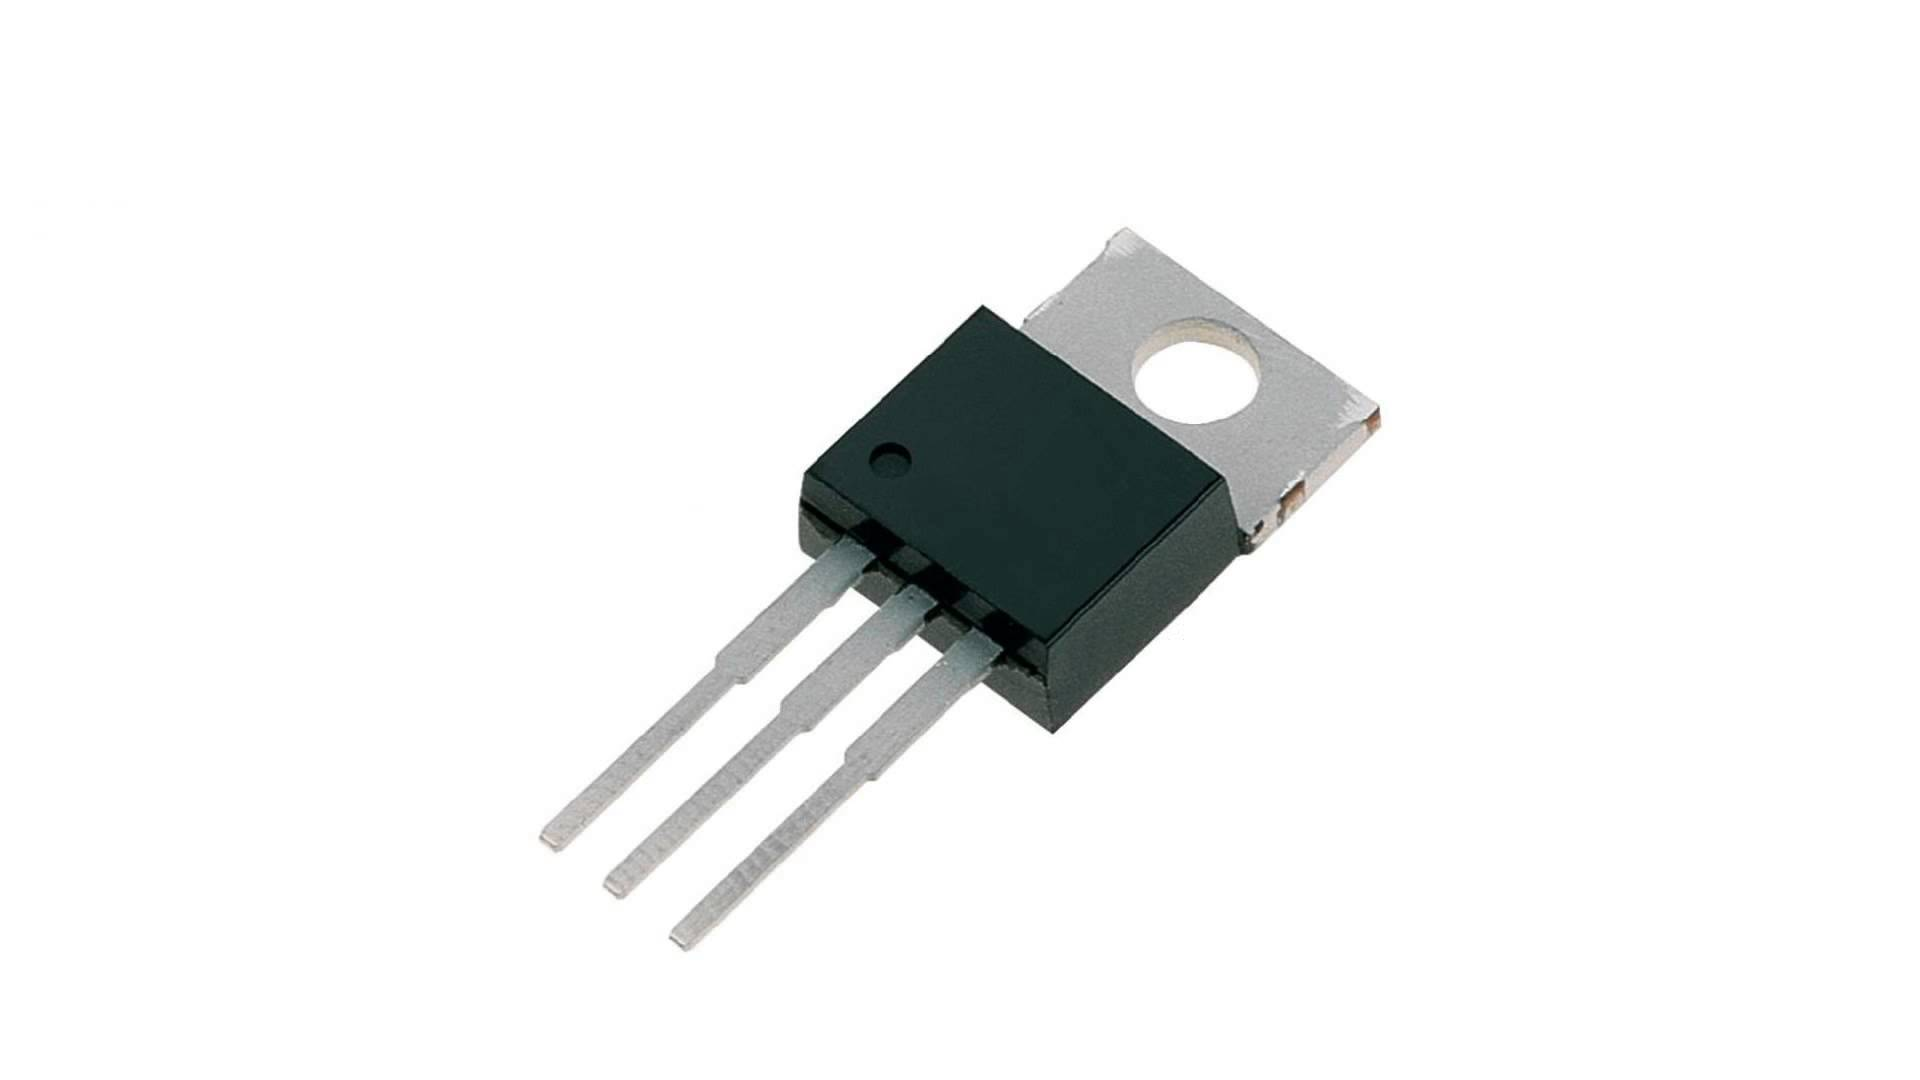 L7805CV (IC:Positive Voltage Regulators 5V/1.5A)